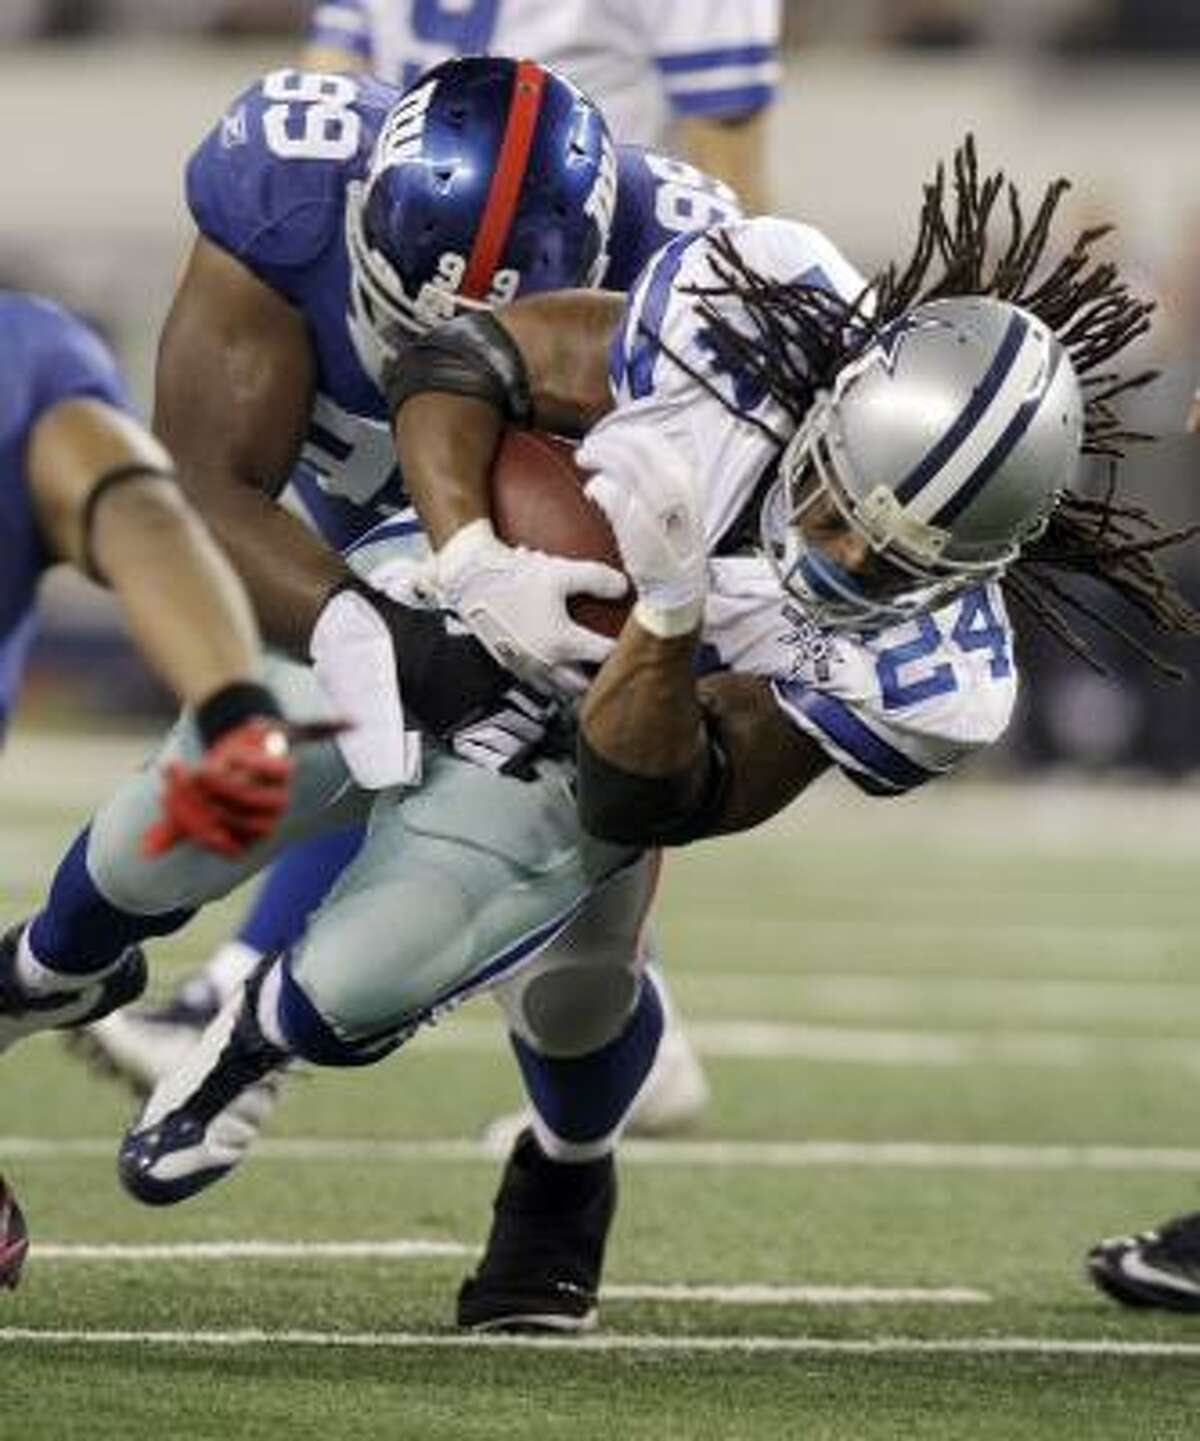 Cowboys running back Marion Barber is stopped by Giants defensive tackle Chris Canty.